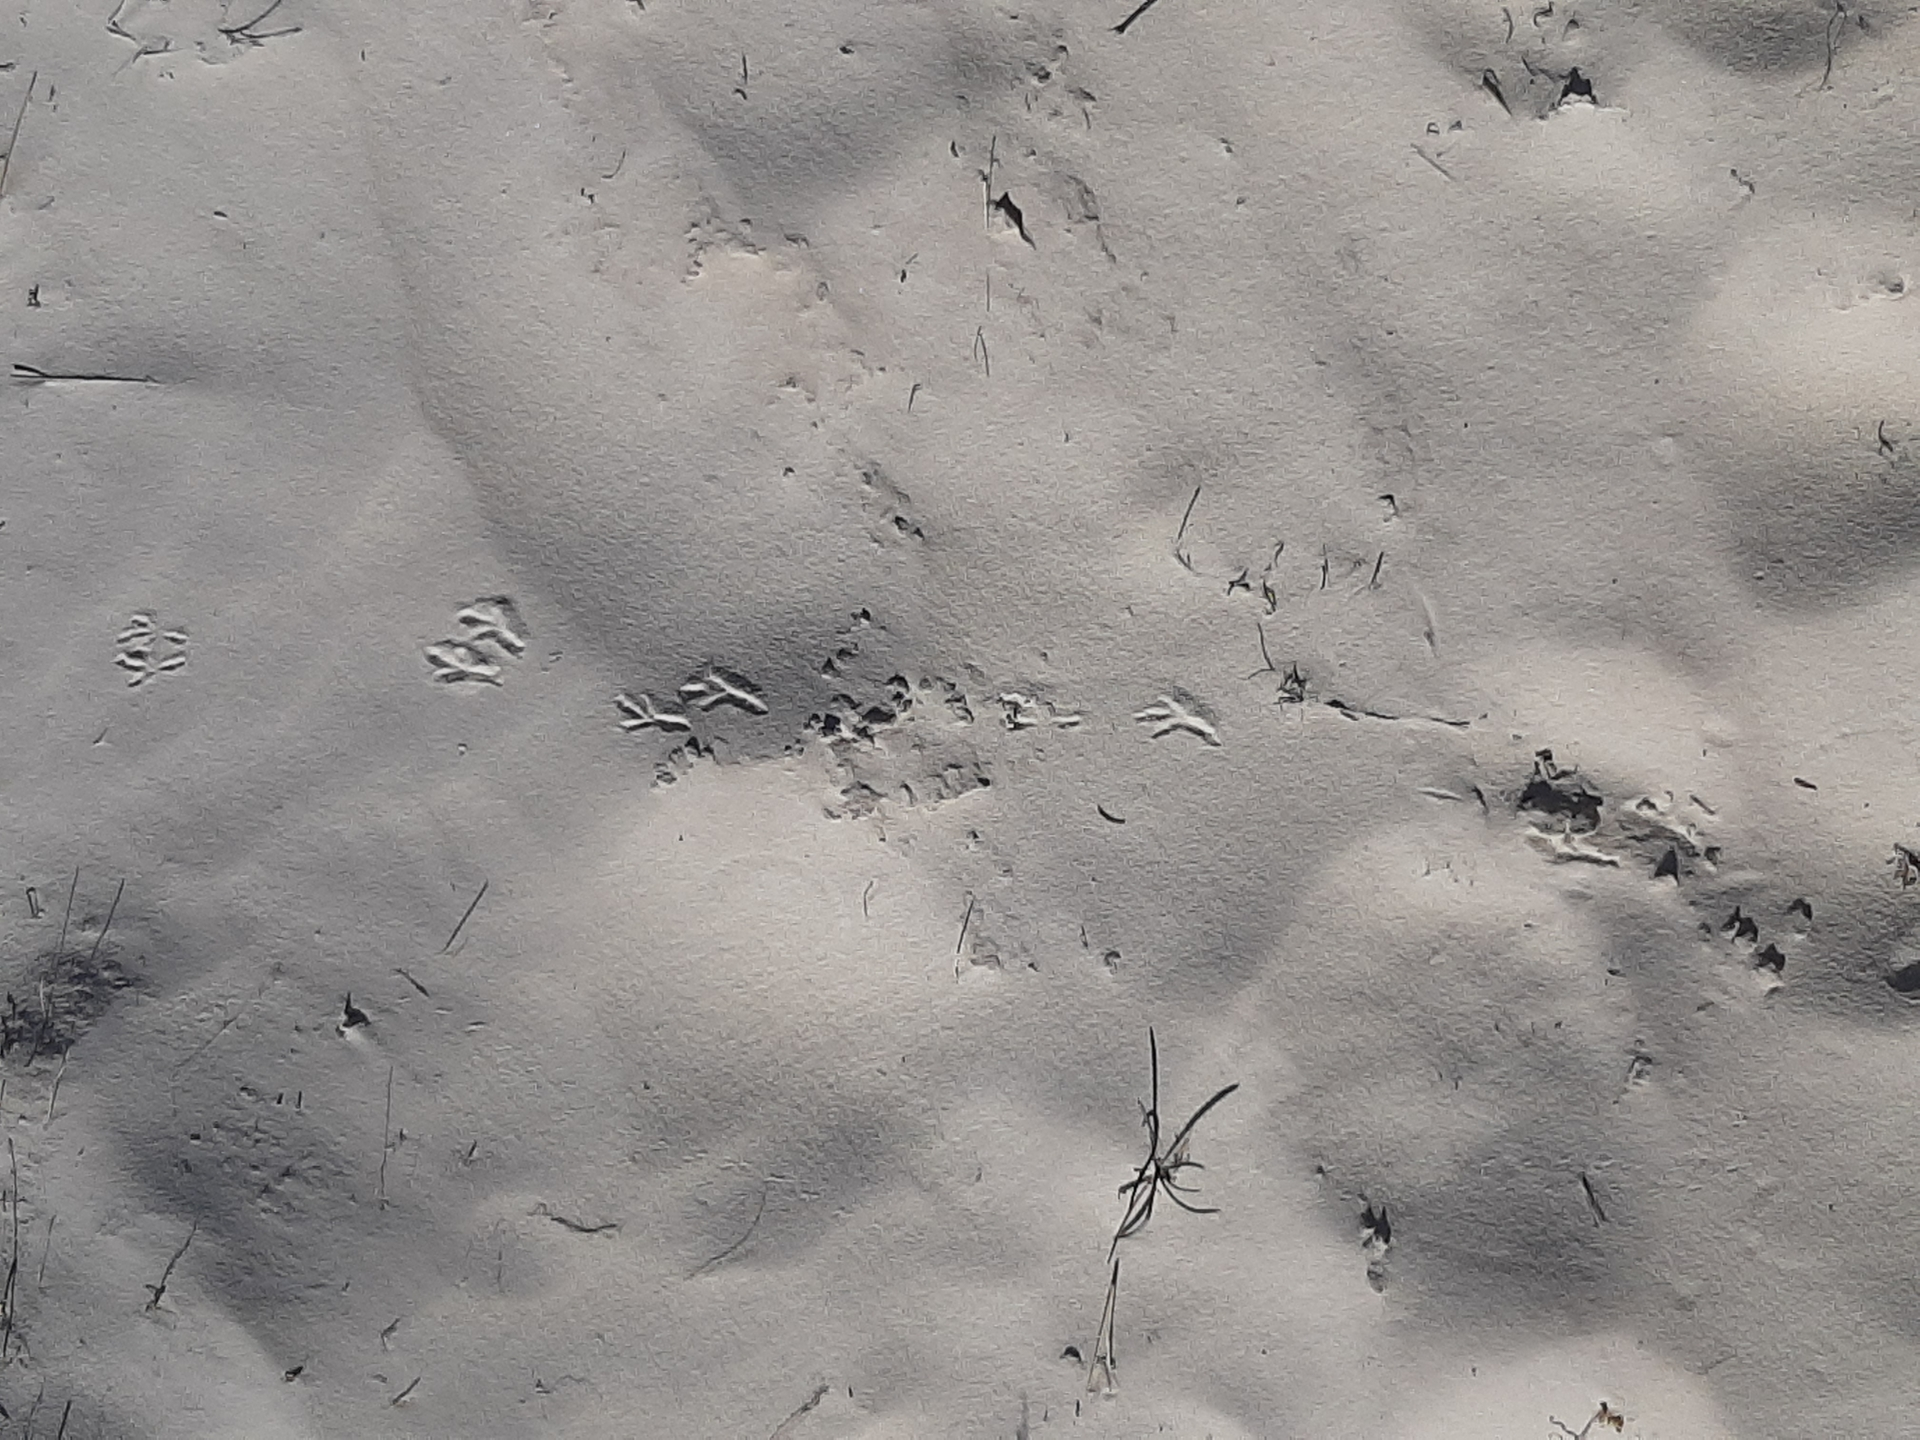 Tracks of a bird in the white sand of the dunes